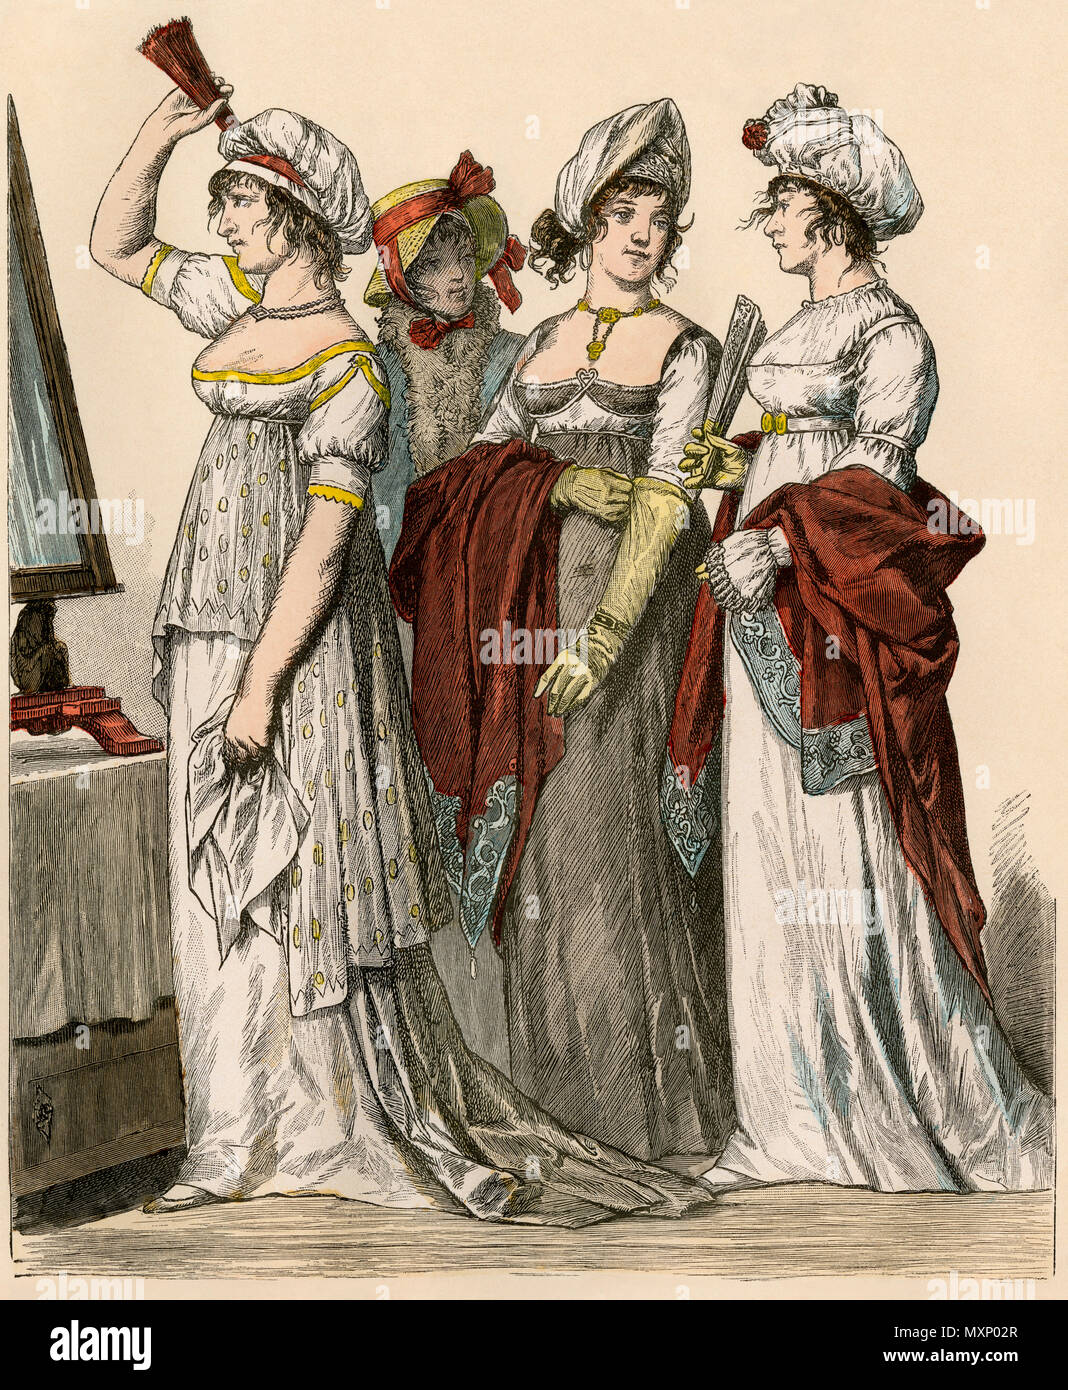 French and German ladies in Empire style gowns, 1802-1804. Hand-colored print - Stock Image